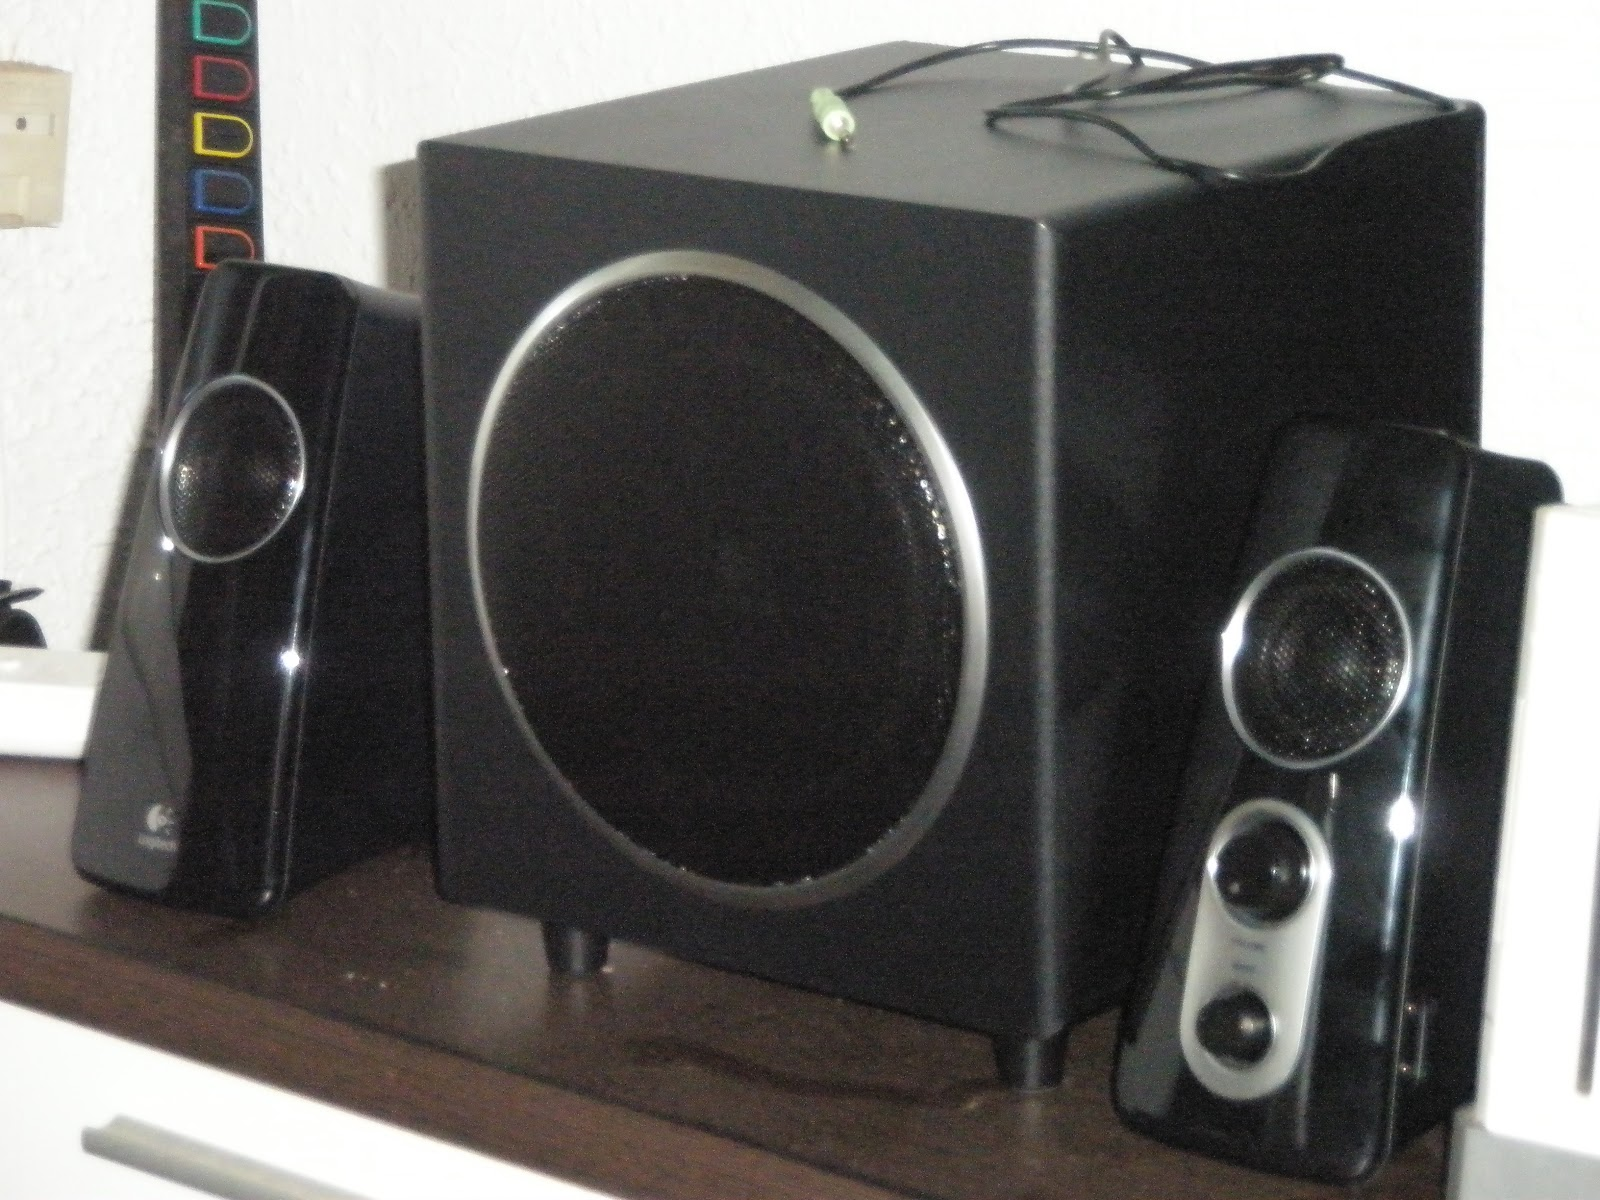 07593562001 -Logitech has a good quality product at an affordable price. The Z523  speakers and subwoofer are no exception.